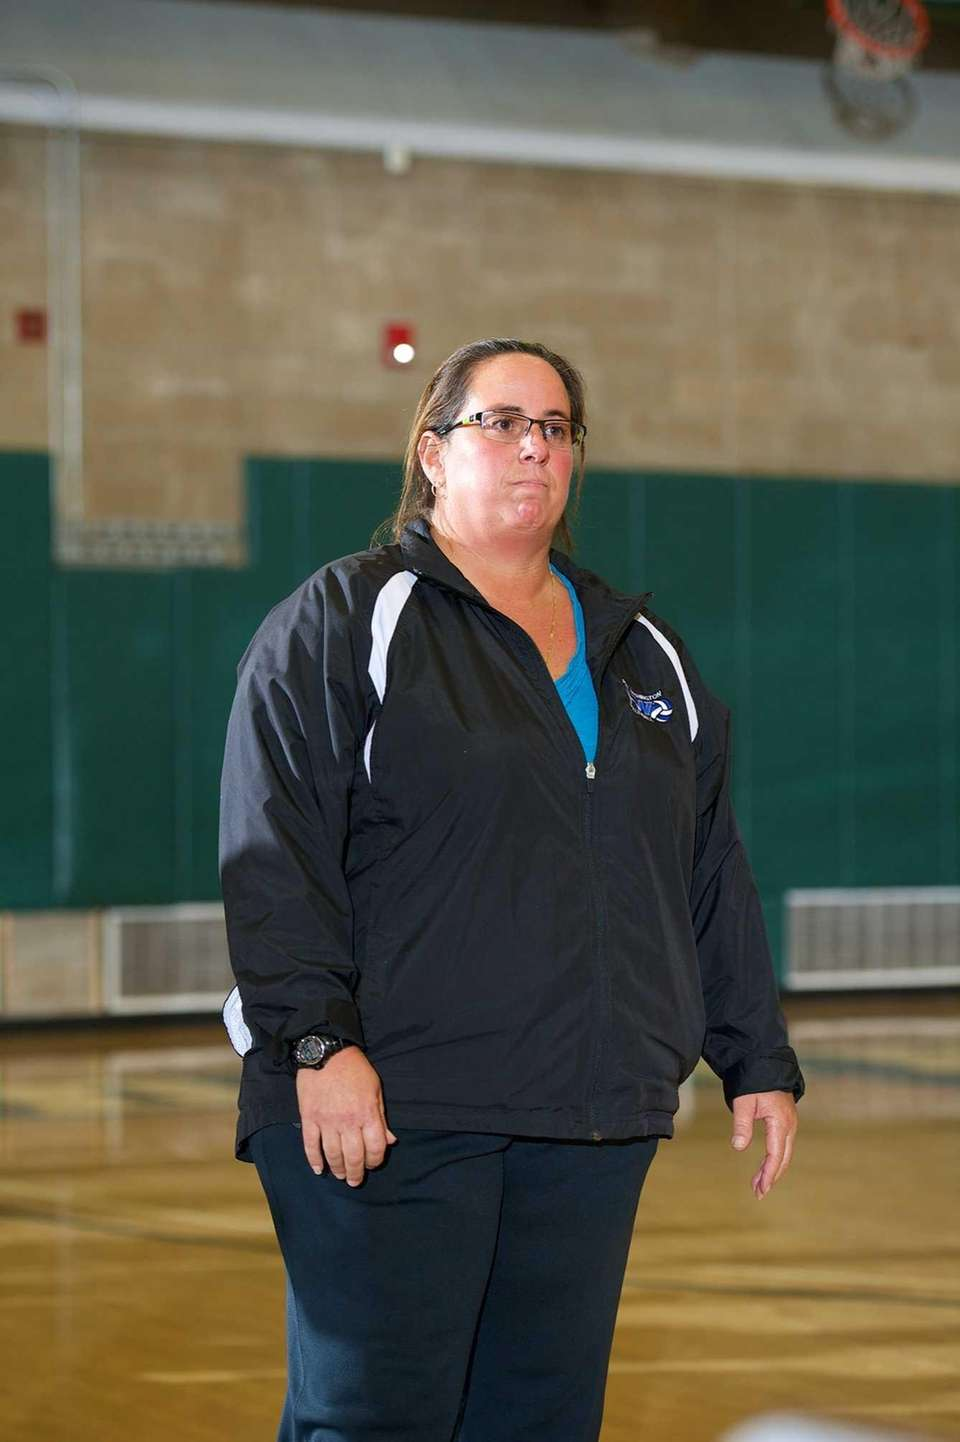 Port Washington head coach Maria Giamanco watches the